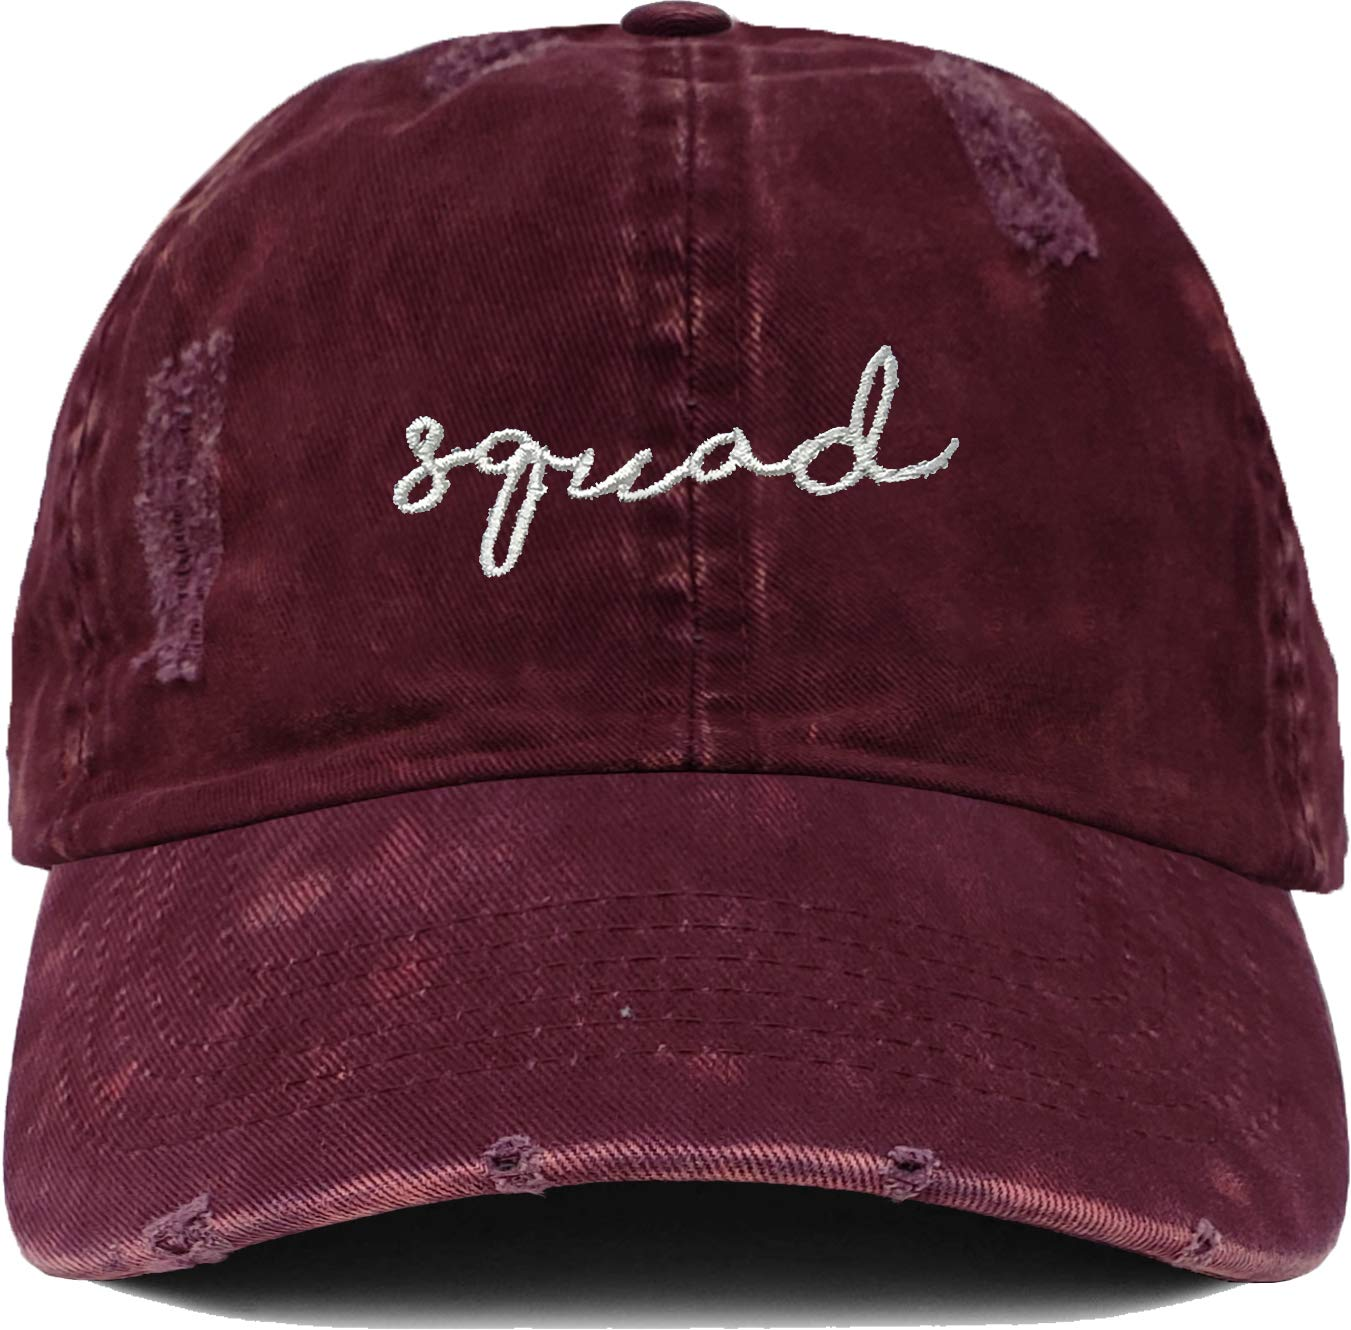 75f6b6dd06bdd2 Funky Junque Dad Hat Unisex Cotton Low Profile Distressed Vintage Baseball  Cap product image